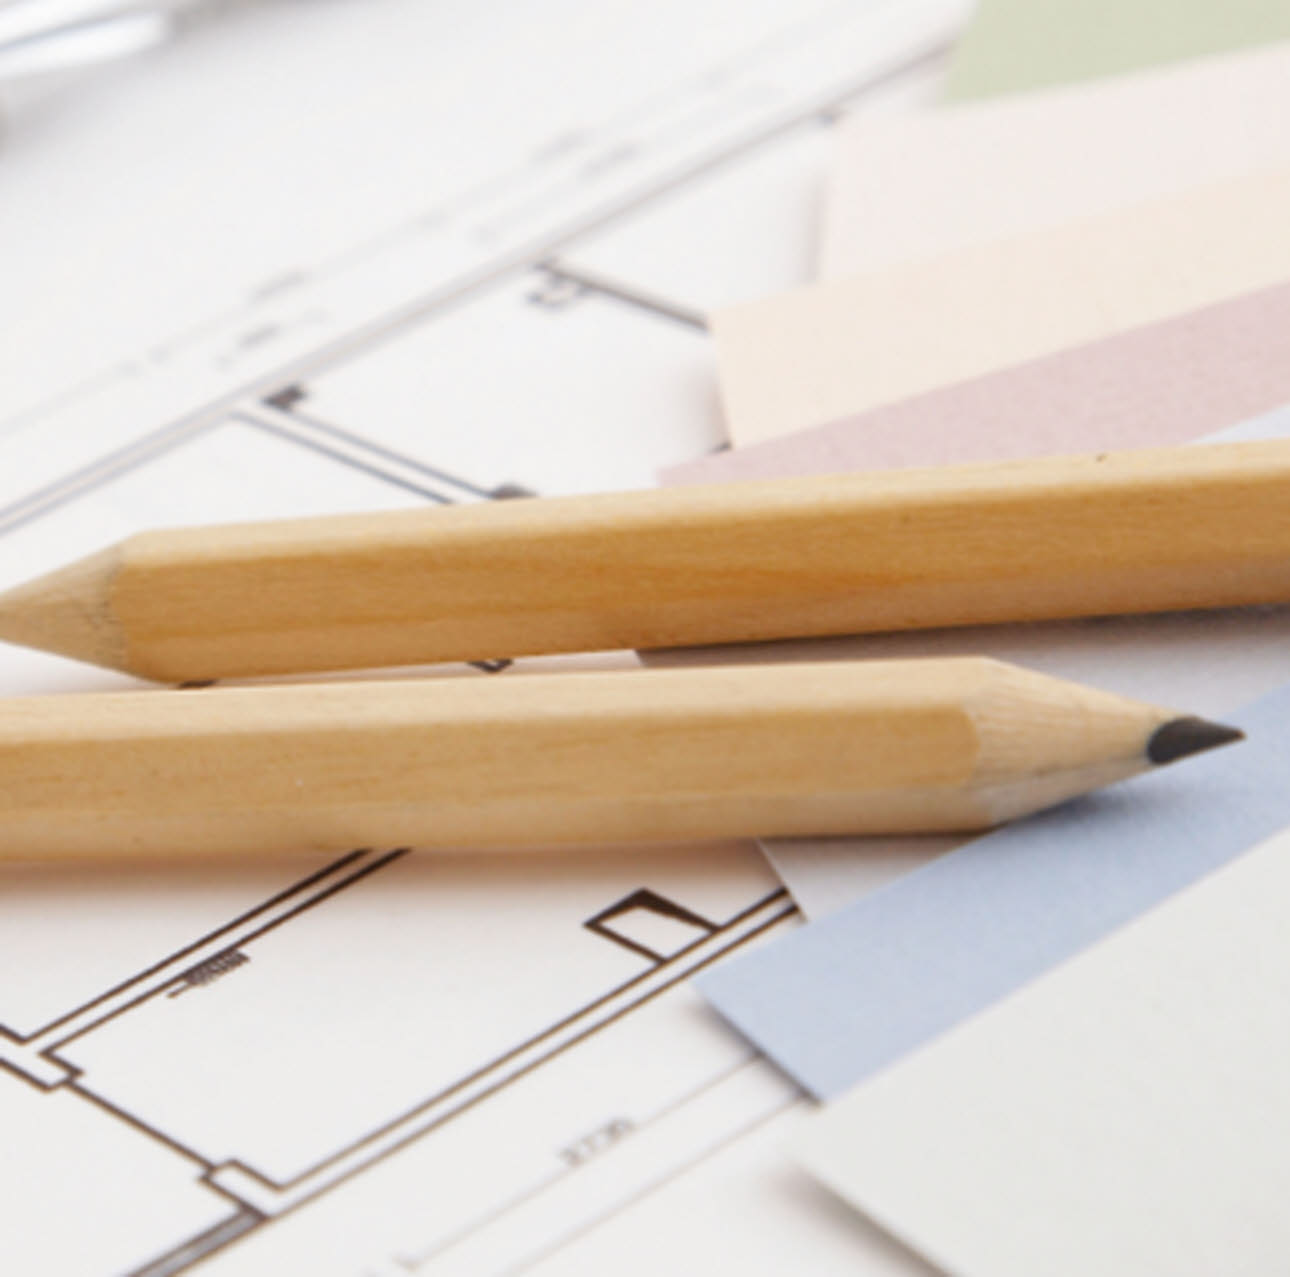 Two pencils placed on top of kitchen design plans